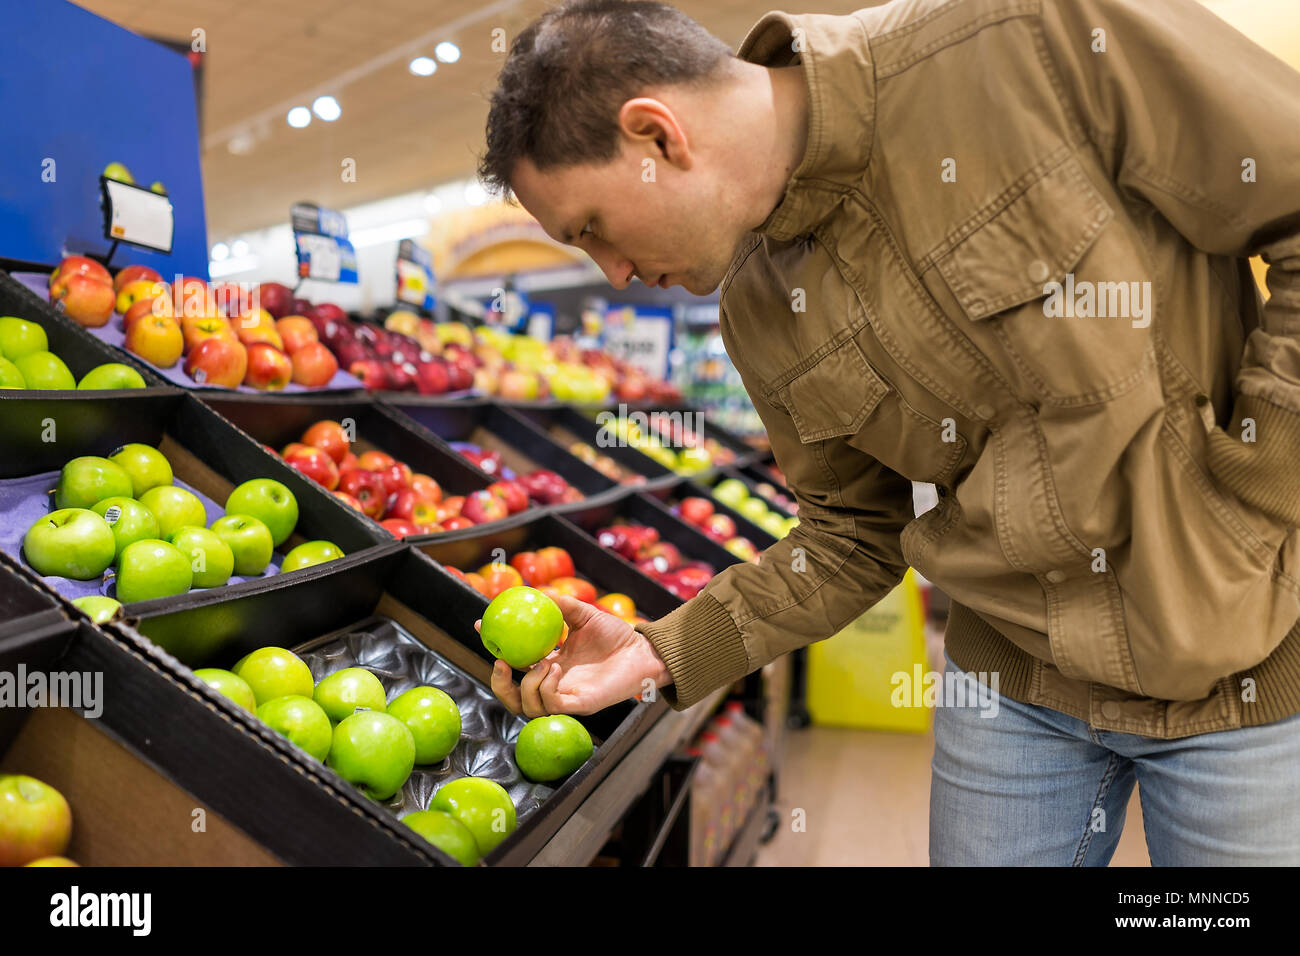 Many varieties assorted apples on display shelf in grocery store boxes in aisle, supermarket inside, man person customer holding choosing granny smith - Stock Image